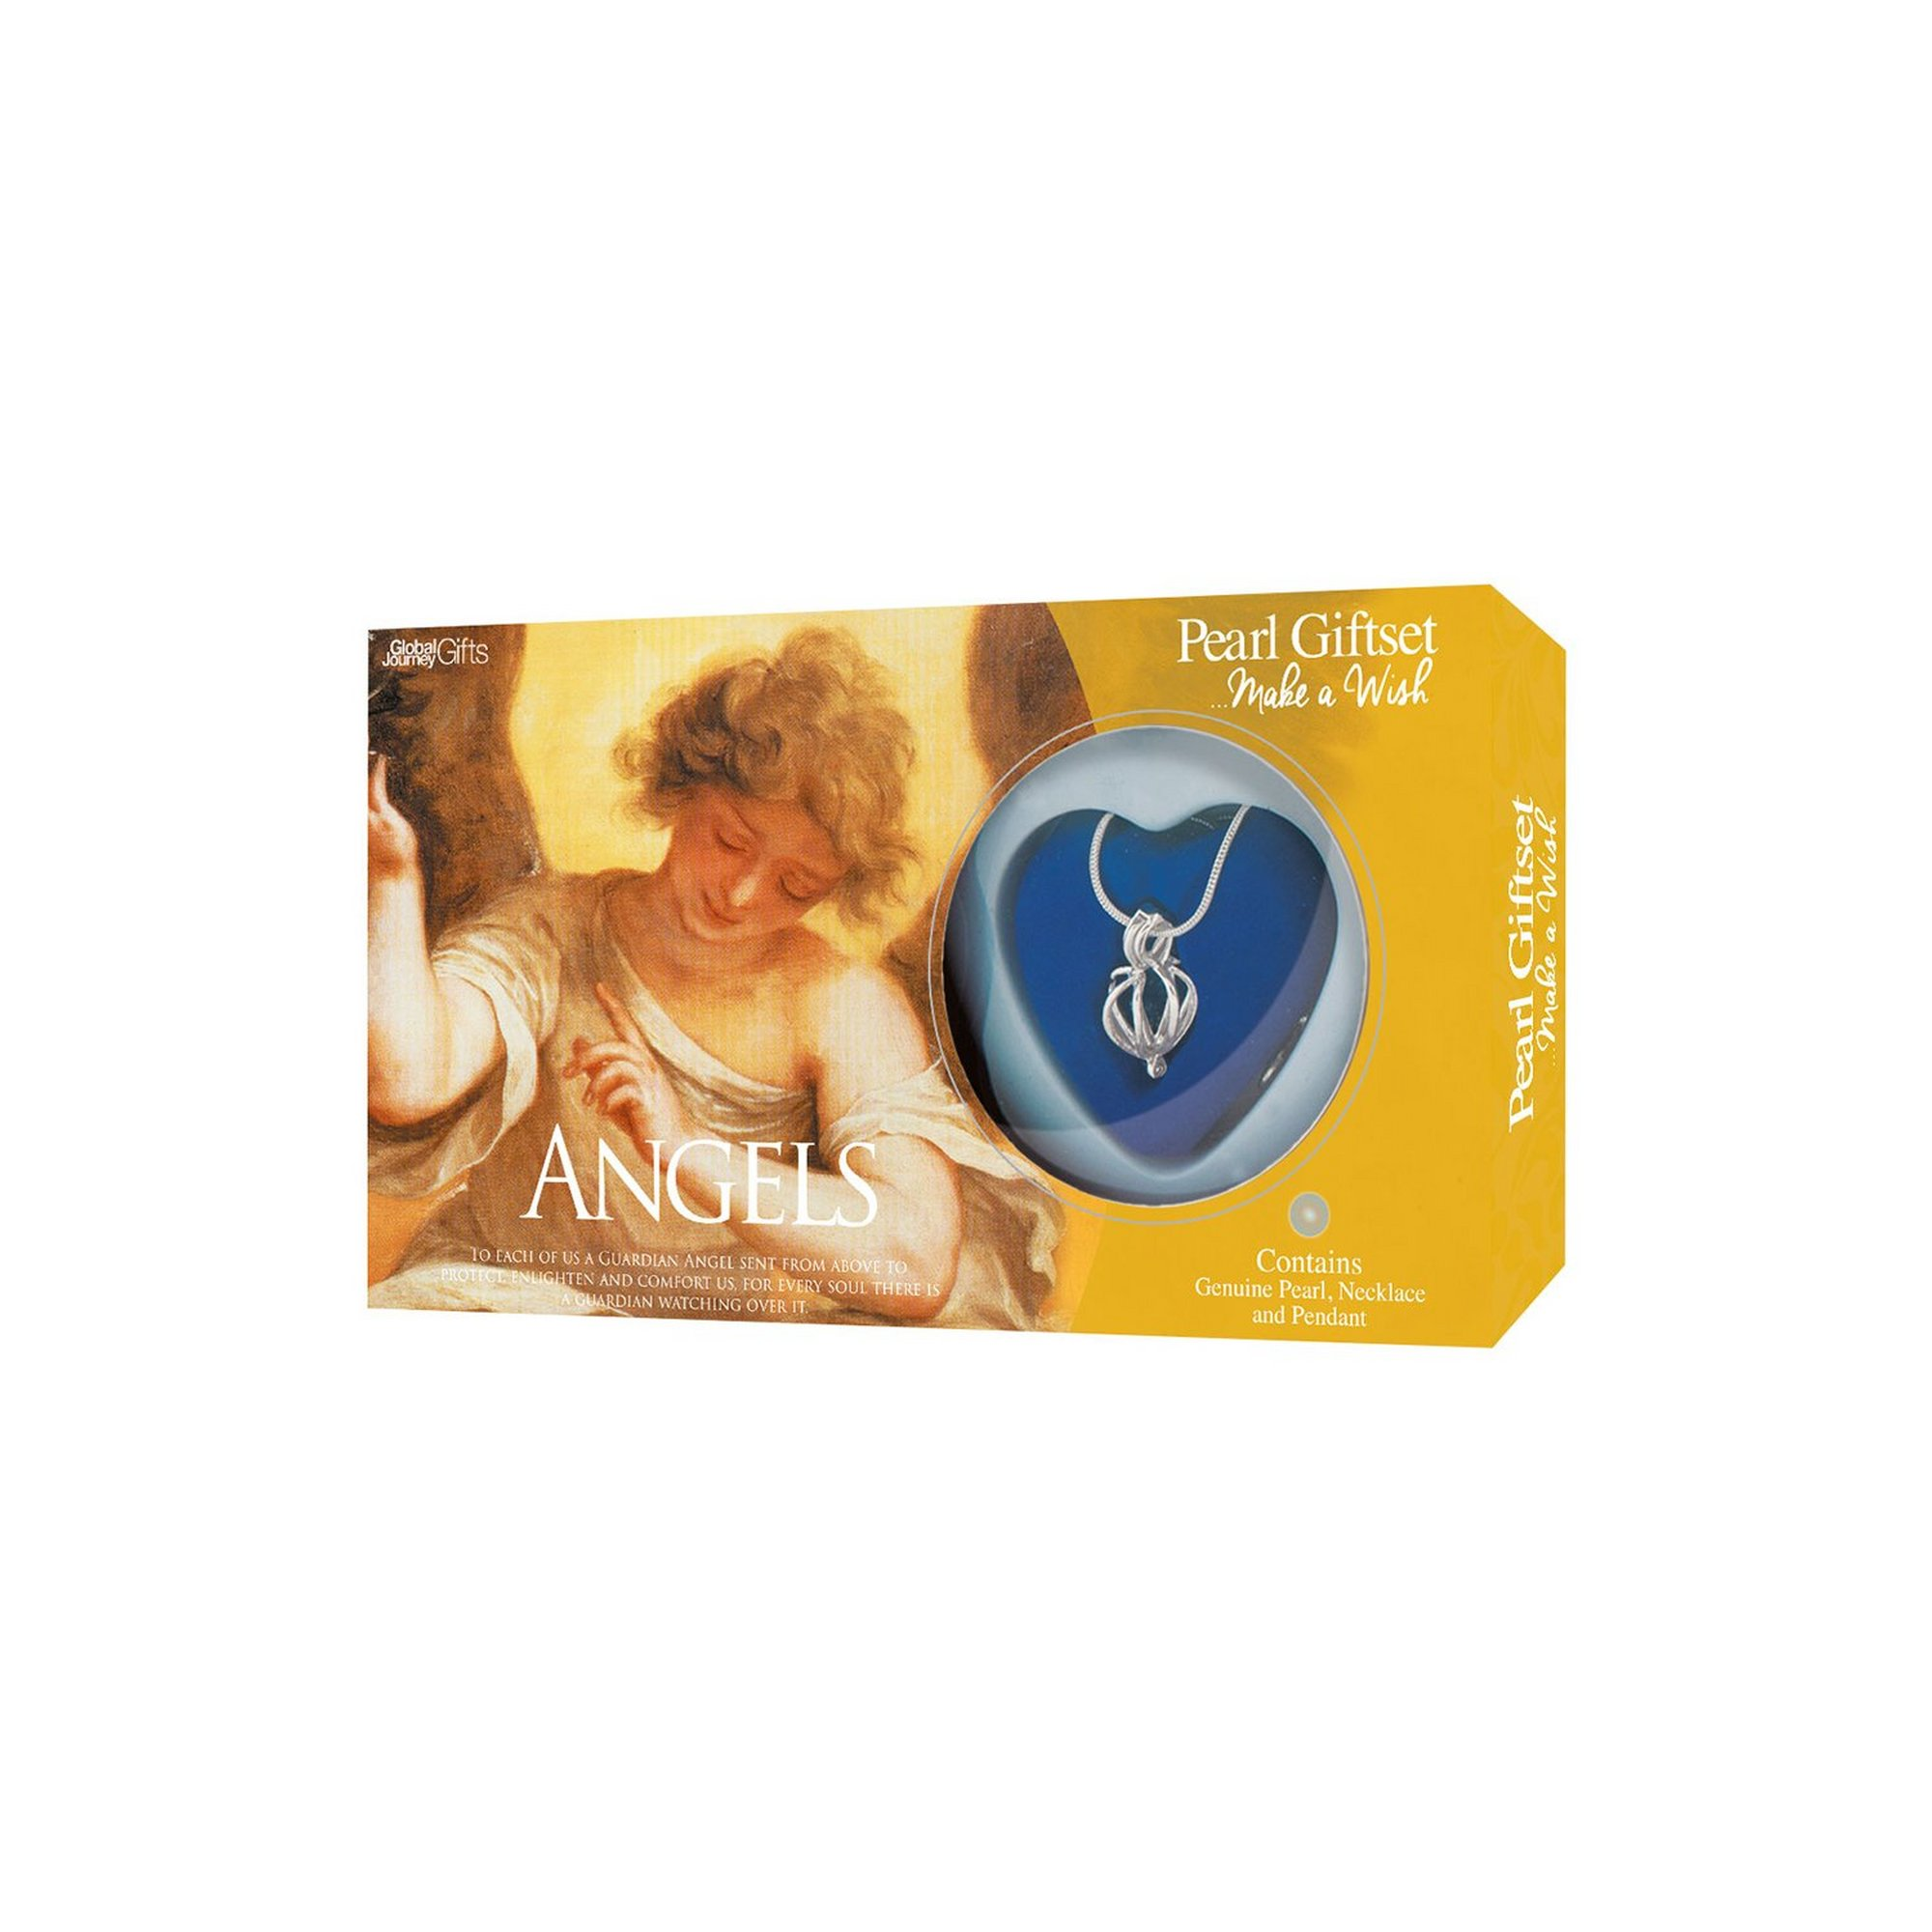 Image of Make A Wish Angels Pearl Pendant Gift Set